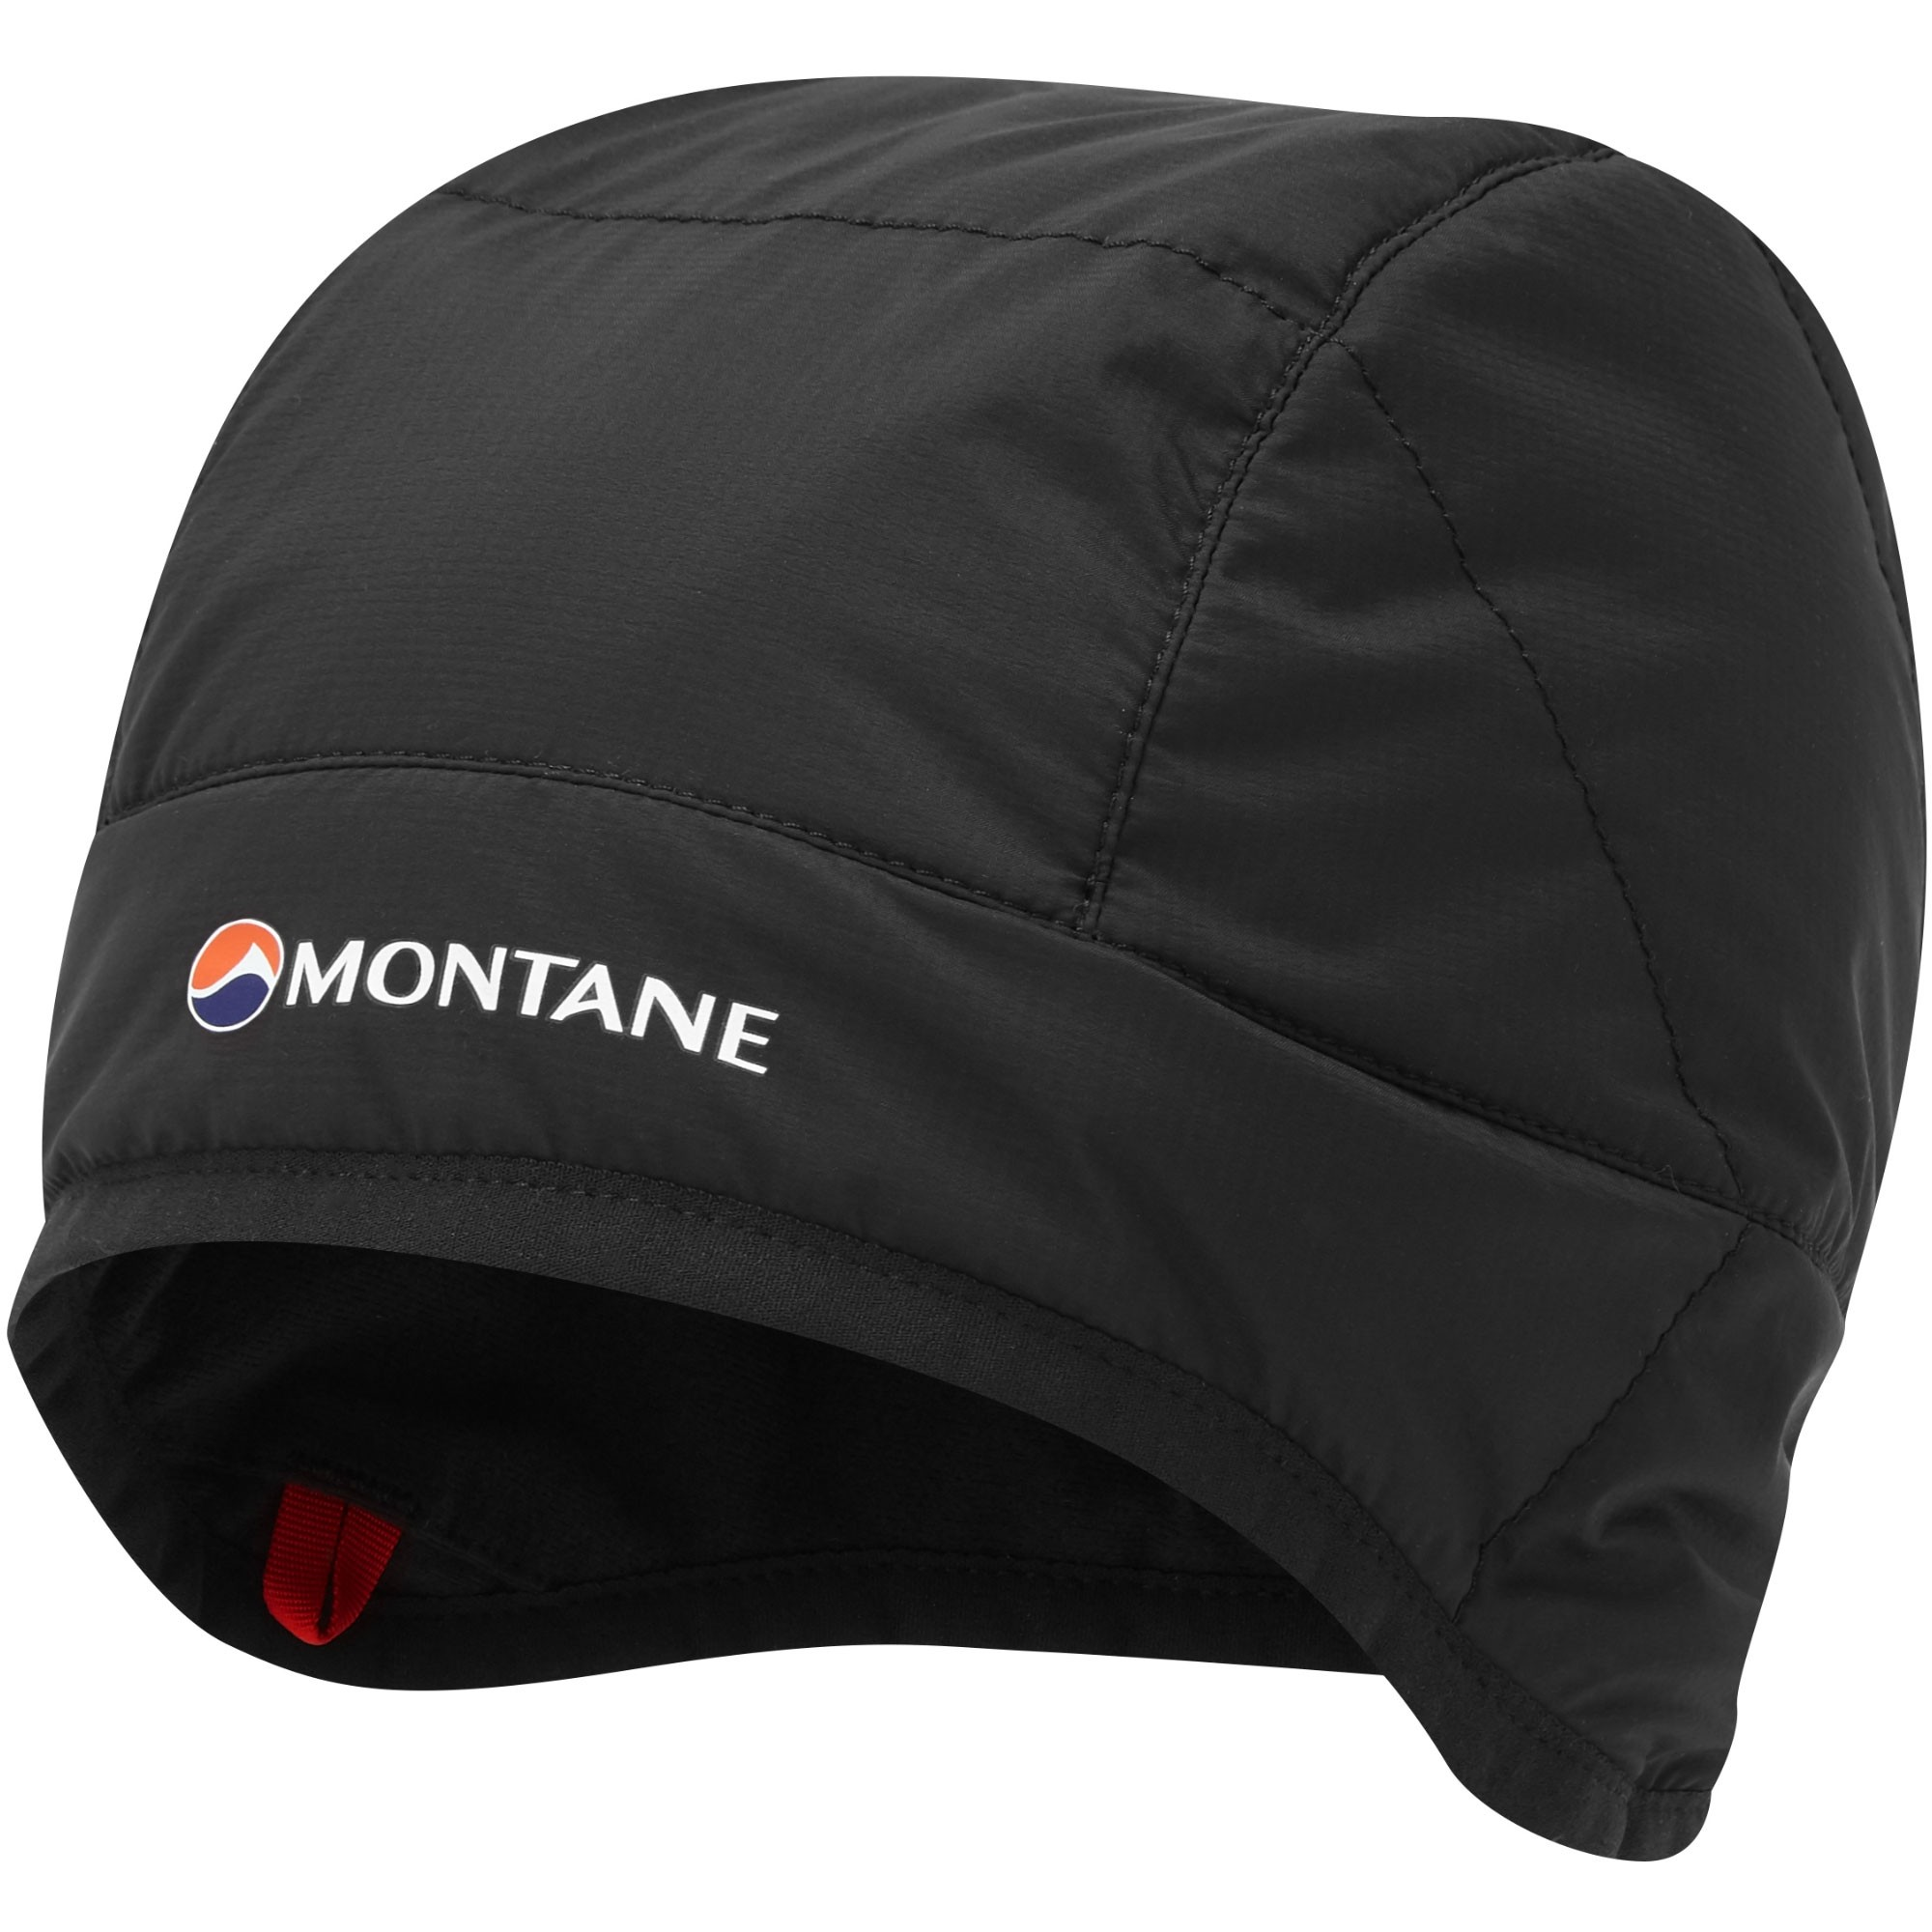 Montane Prism Insulated Hat - Black